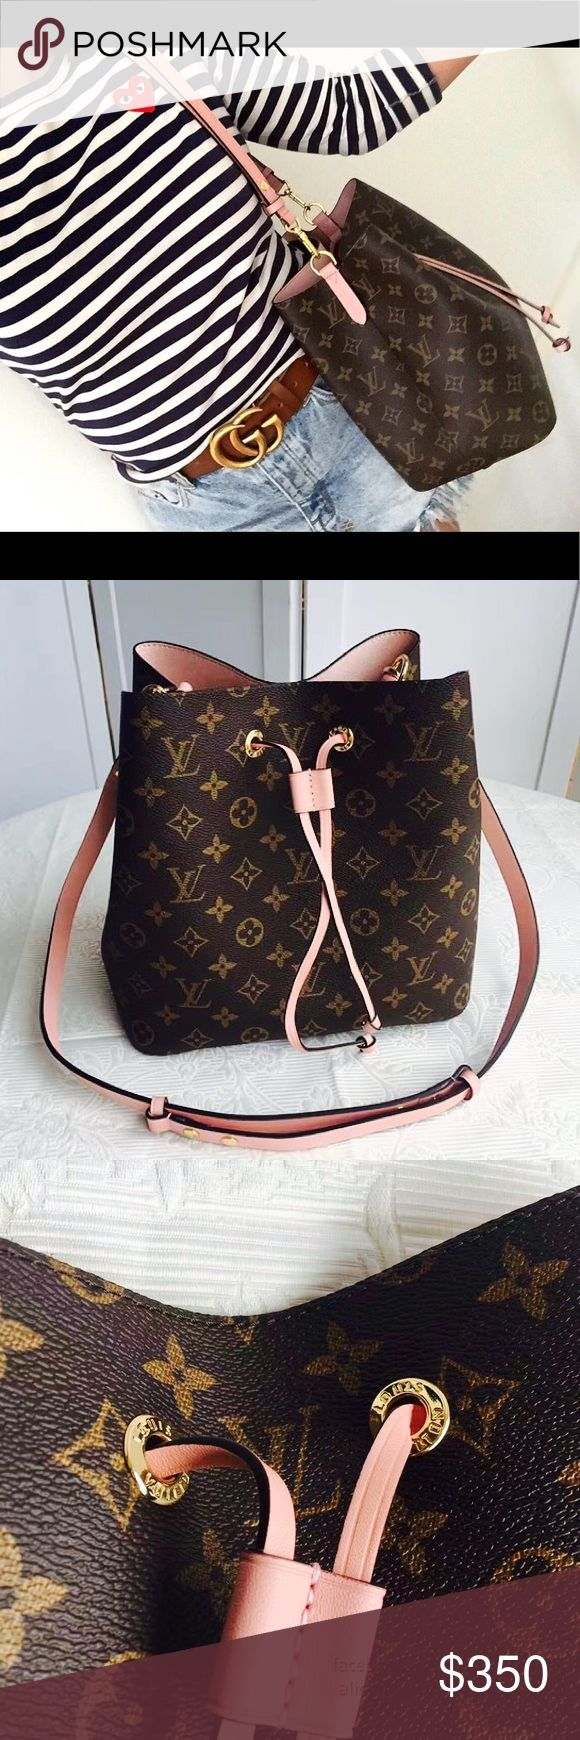 LV Neo Noe Pink Beautiful inspired LV Neo Noe Bag, leather, dust bag included  must have & will loveanswer is No! High end materials  Louis Vuitton Bags Shoulder Bags